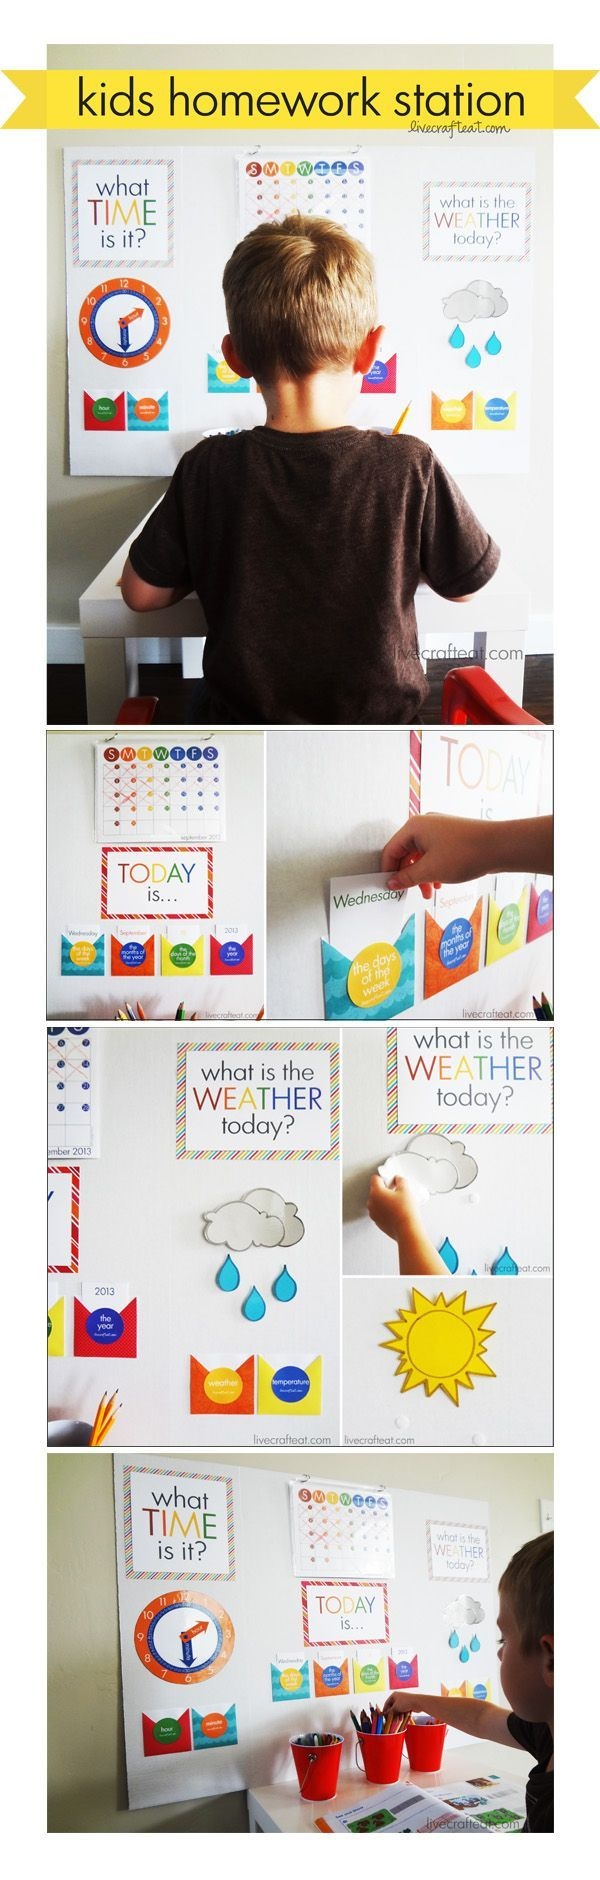 a diy homework station - help your kid focus on his schoolwork in addition to teaching him how to tell time, the calendar, and identify different types of weather. and don't forget the free printables so you can make your own!! :)   www.livecrafteat.com